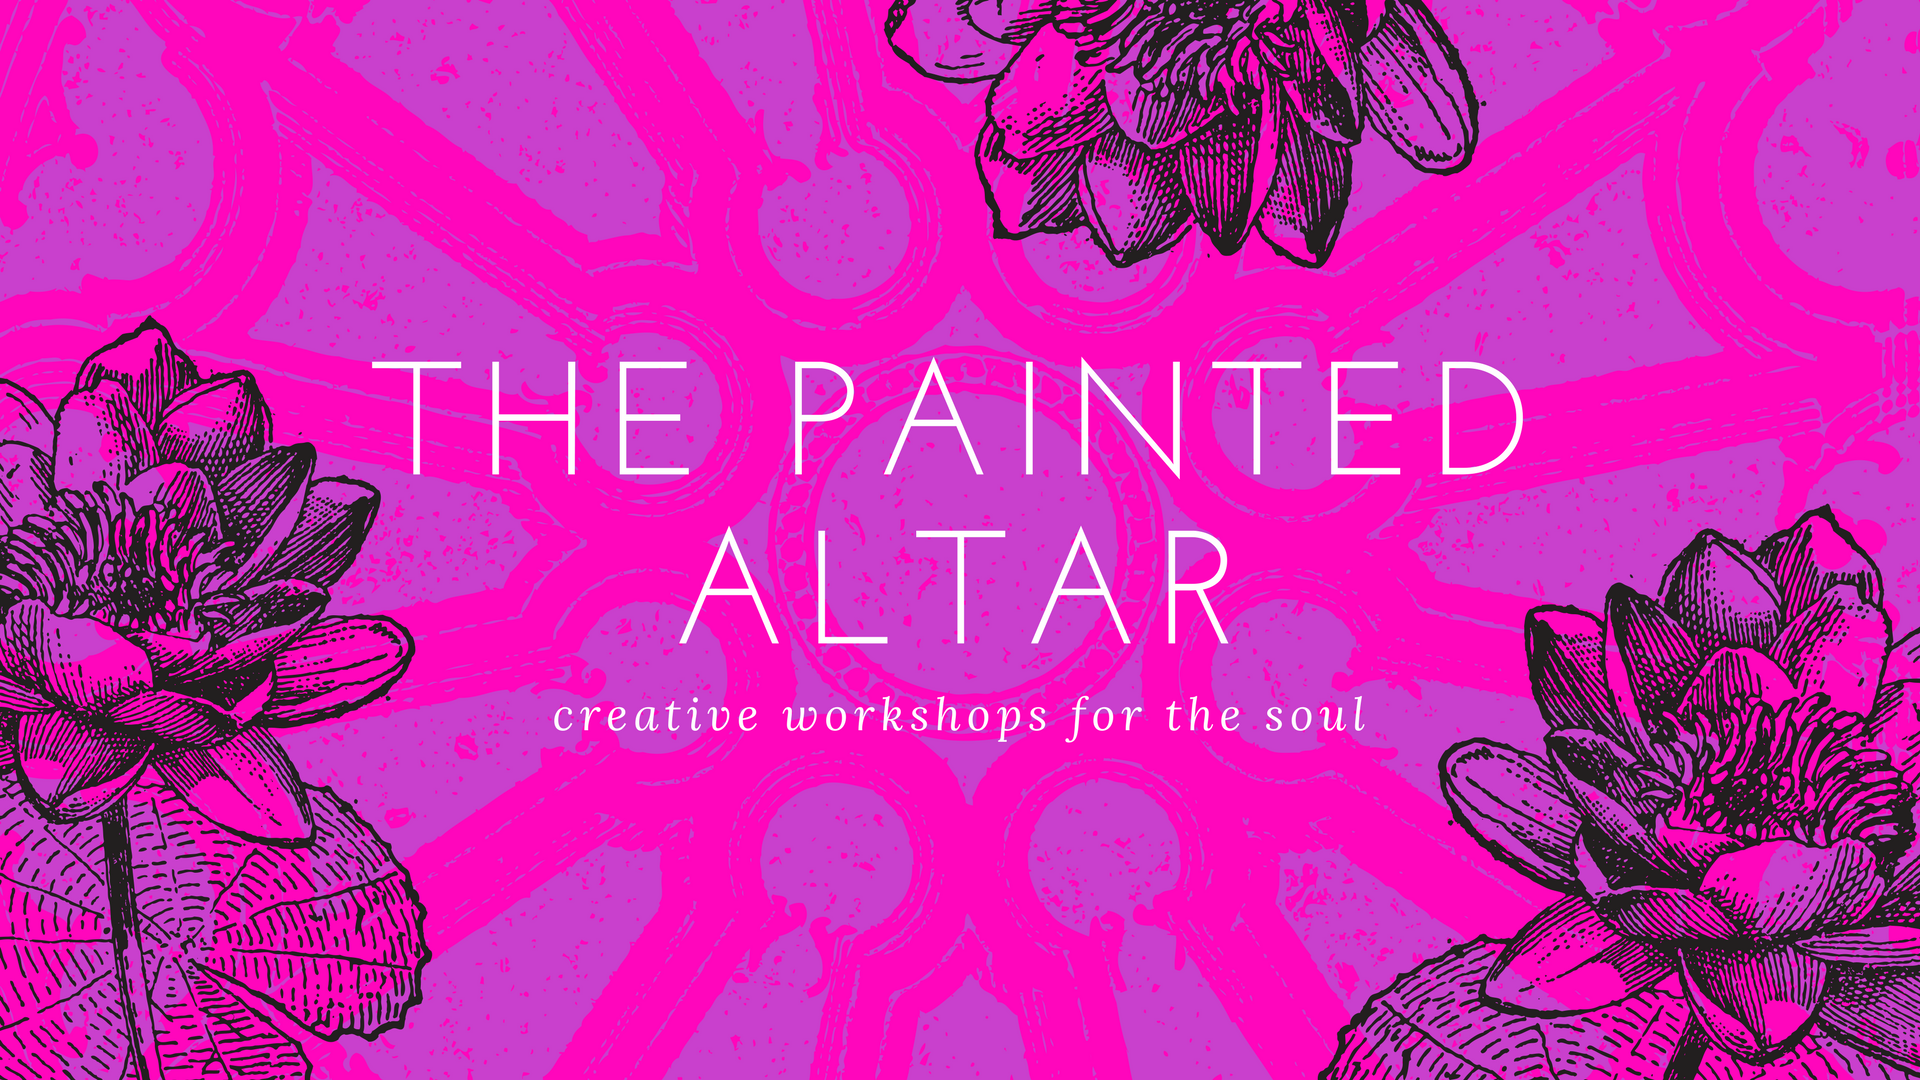 Soul Collage Workshop: 'A Creative Practice for Self Exploration'